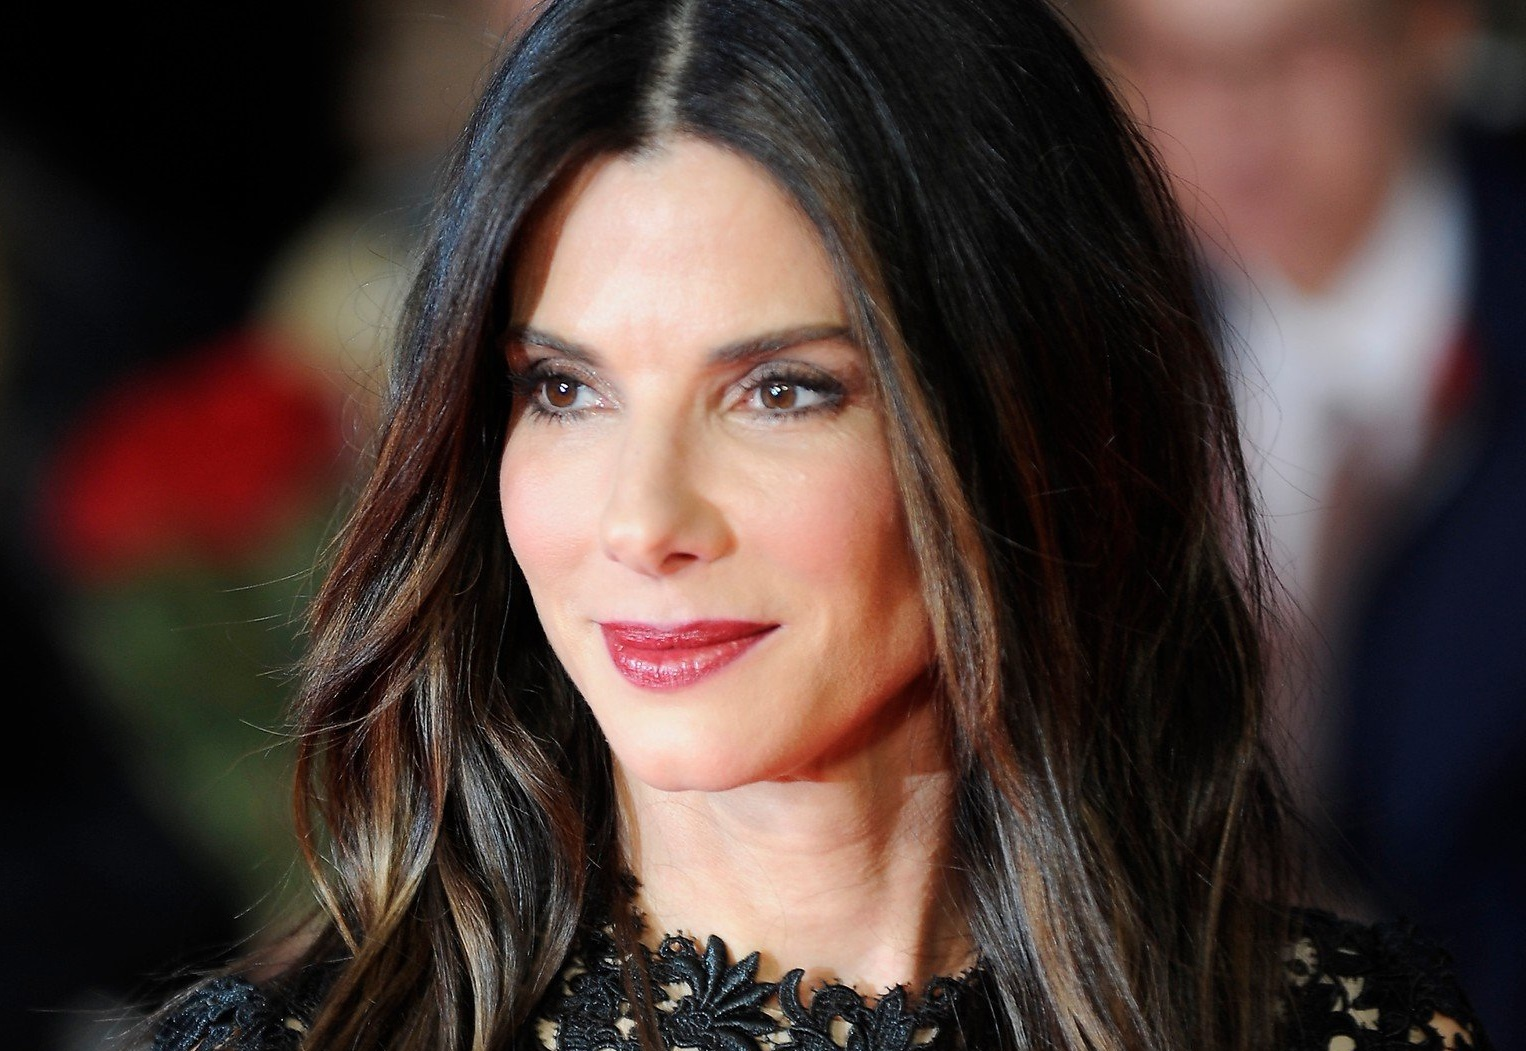 Sandra Bullock attends the film premiere of Gravity at the 57th BFI London Film Festival held on the 10th of October 2013 at the Odeon cinema, Leicester Square, London, UK., Image: 229432690, License: Rights-managed, Restrictions: , Model Release: no, Credit line: Profimedia, TEMP Camerapress